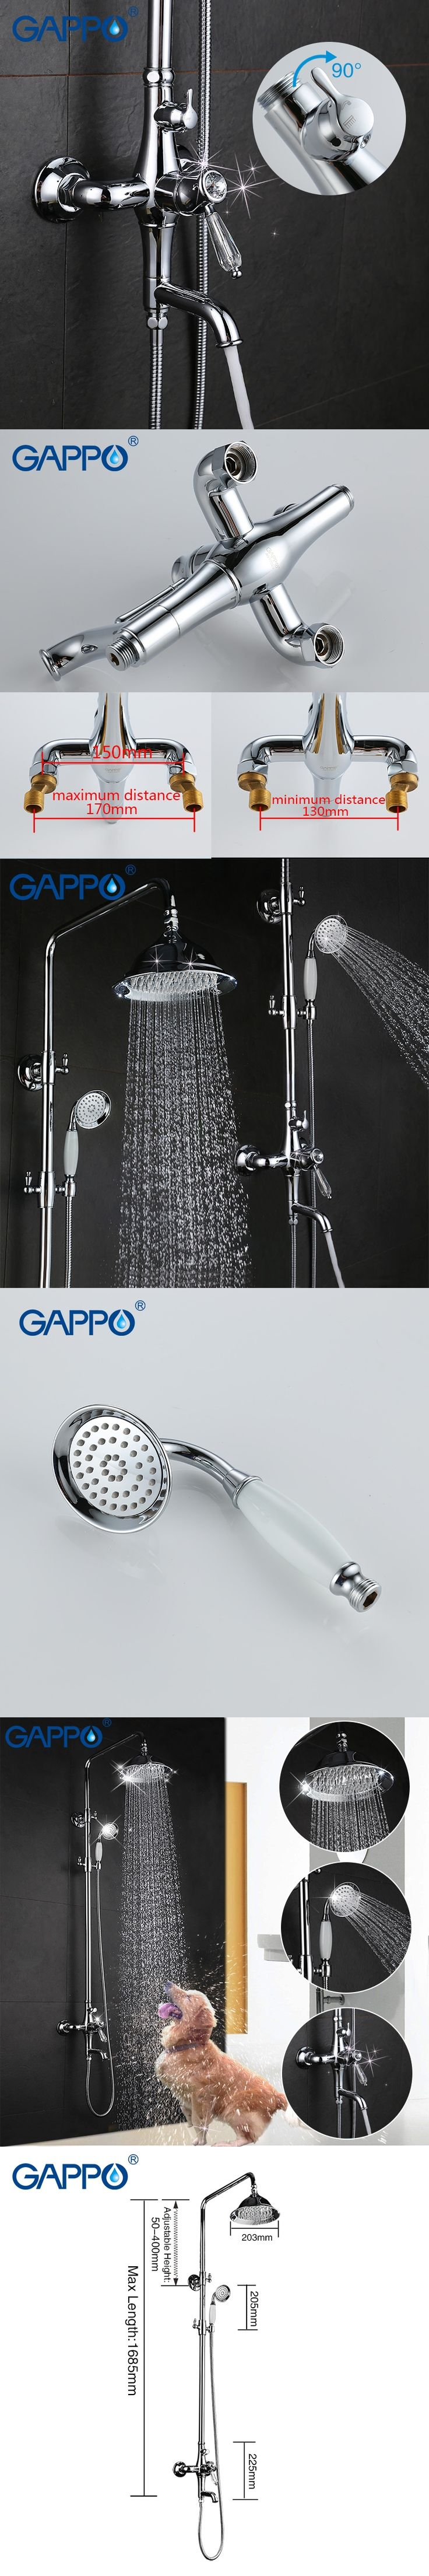 GAPPO bathroom shower faucet set bronze bathtub mixer shower faucet chrome Bath Shower tap waterfall big rain shower head GA2497